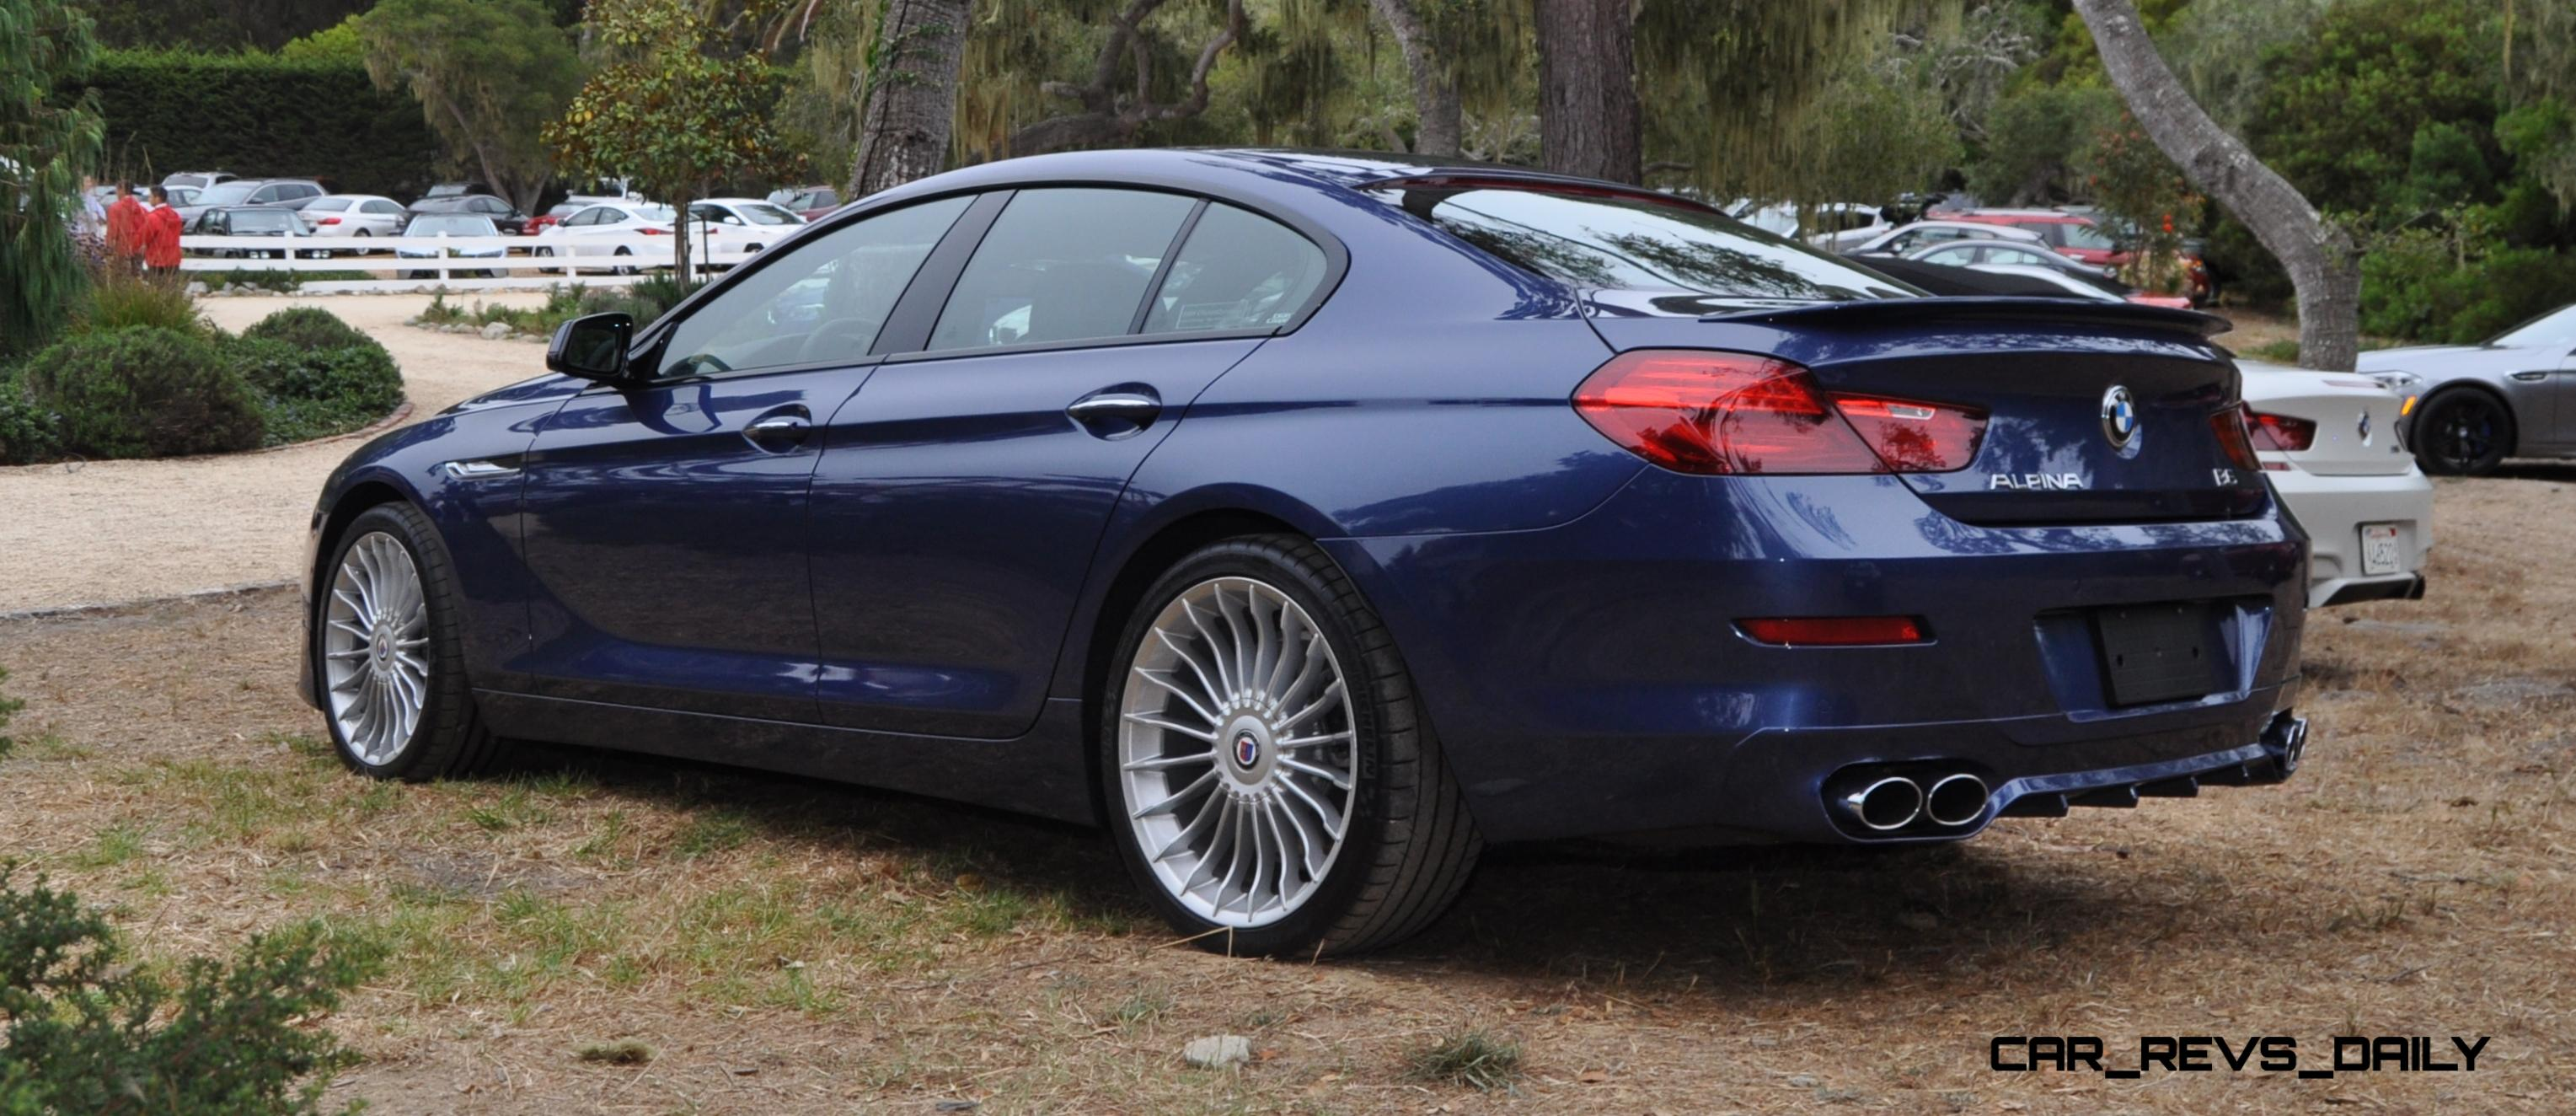 HP S BMW ALPINA B XDrive Gran Coupe Is Now Available - Bmw alpina b6 biturbo price